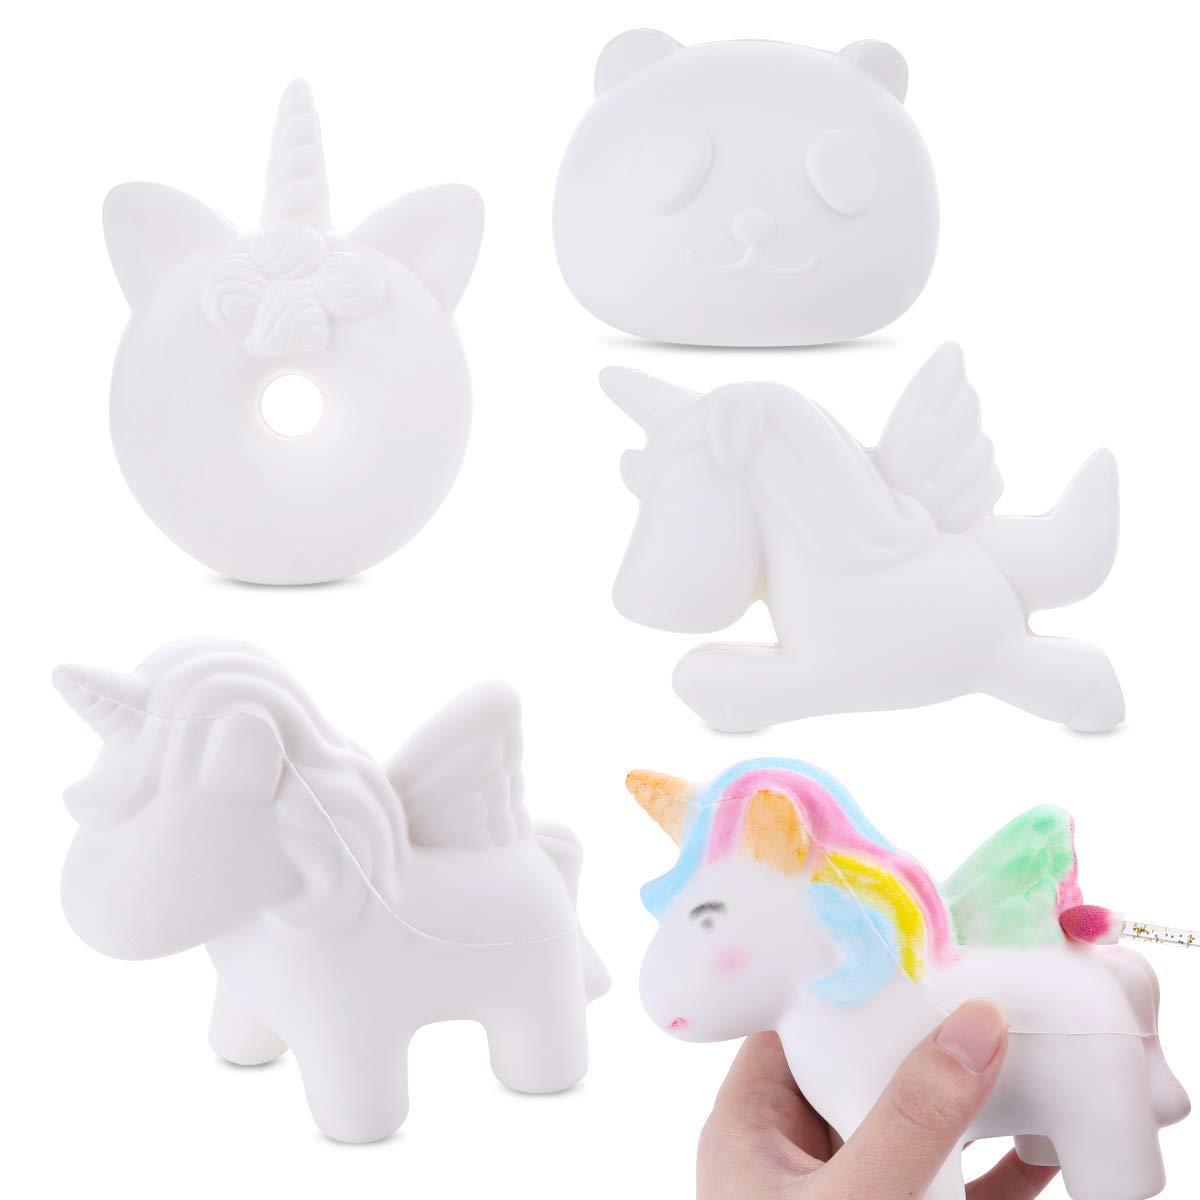 LEEHUR 4Pcs DIY White Animal Slow Rising Squishies Pack Party Favors Jumbo Blank Kawaii Soft Creamy Unicorn Horse Panda Donut Squishy Squeeze Sensory Toys Stress Anxiety Relief for Kids Adults by LEEHUR